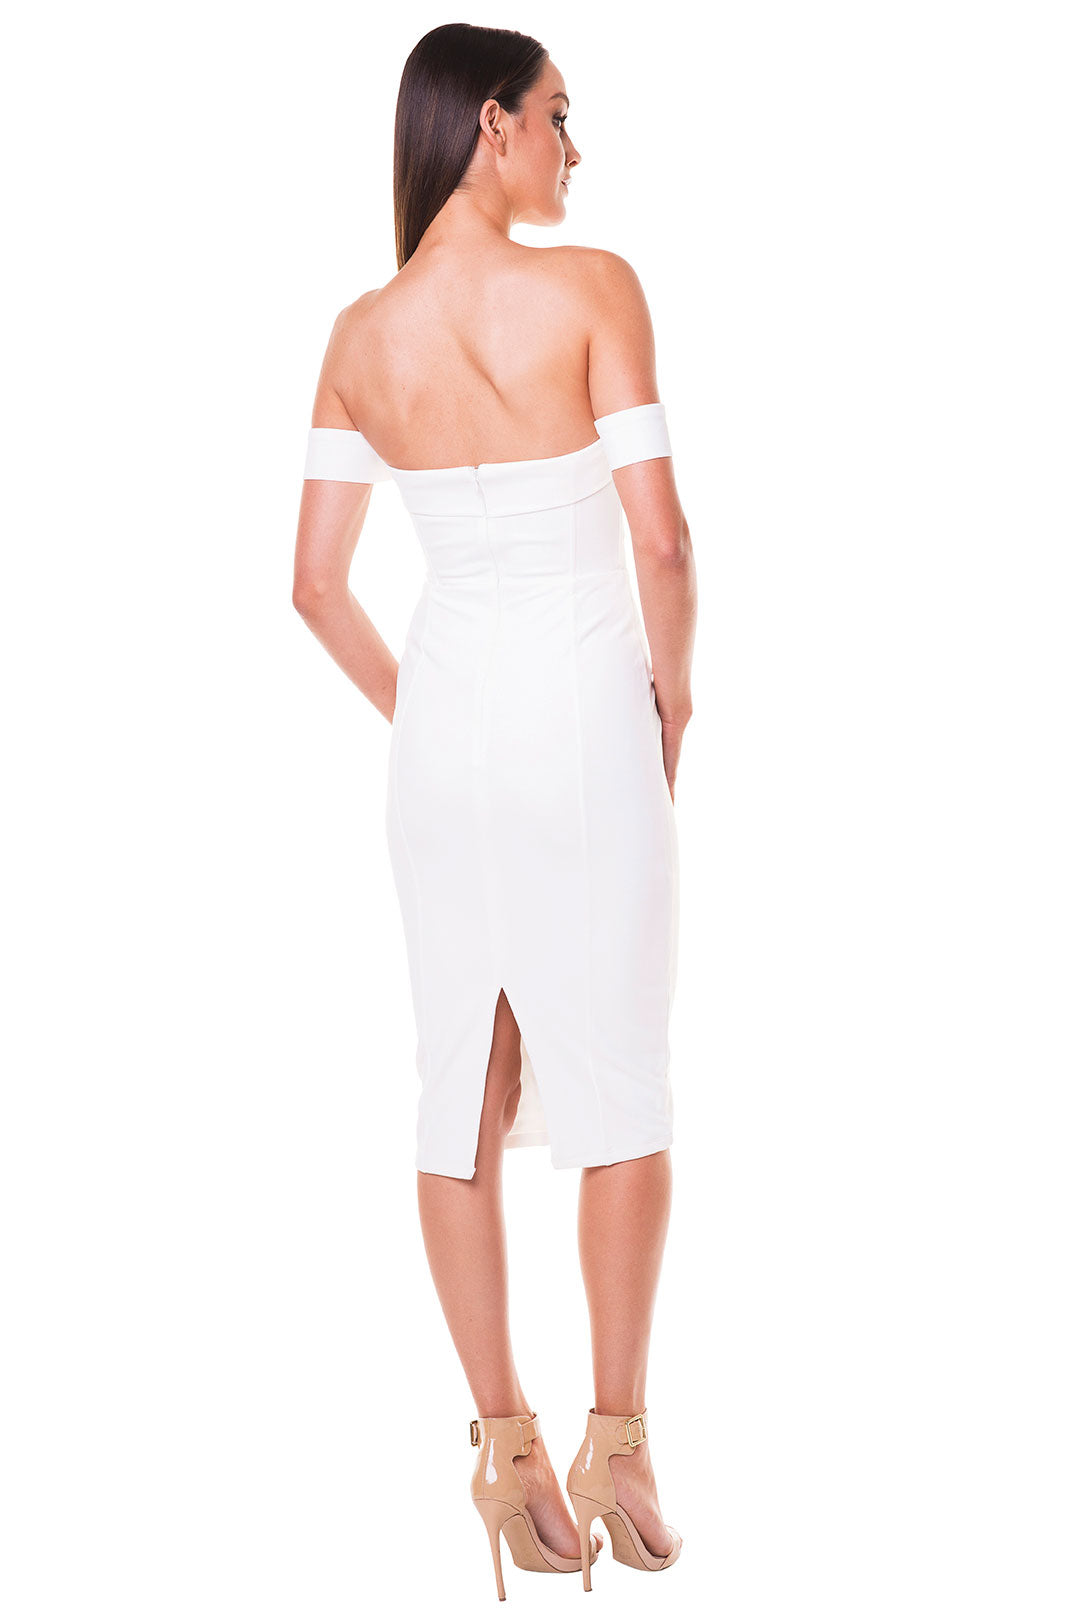 Cynthia Off-Shoulder Dress - White